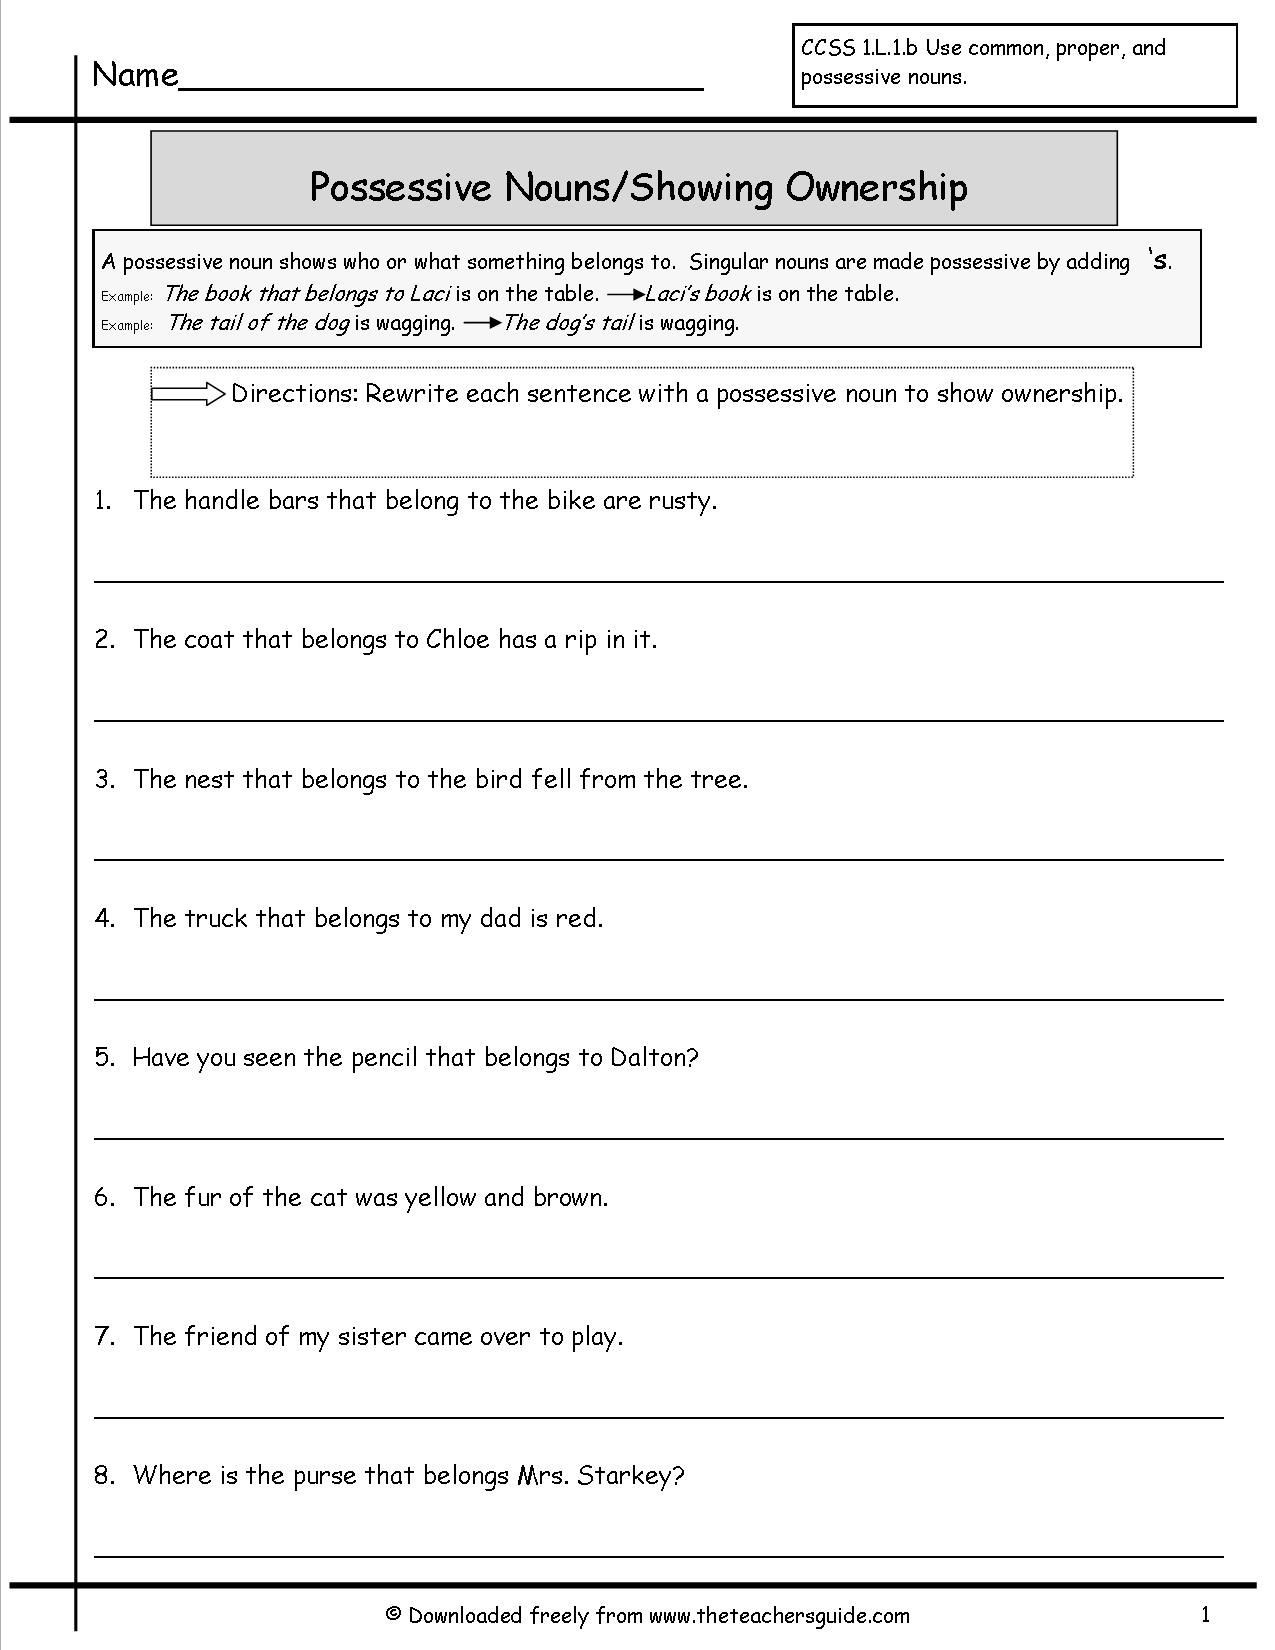 Possessive Nouns Worksheets 1st Grade Possessive Nouns Worksheet